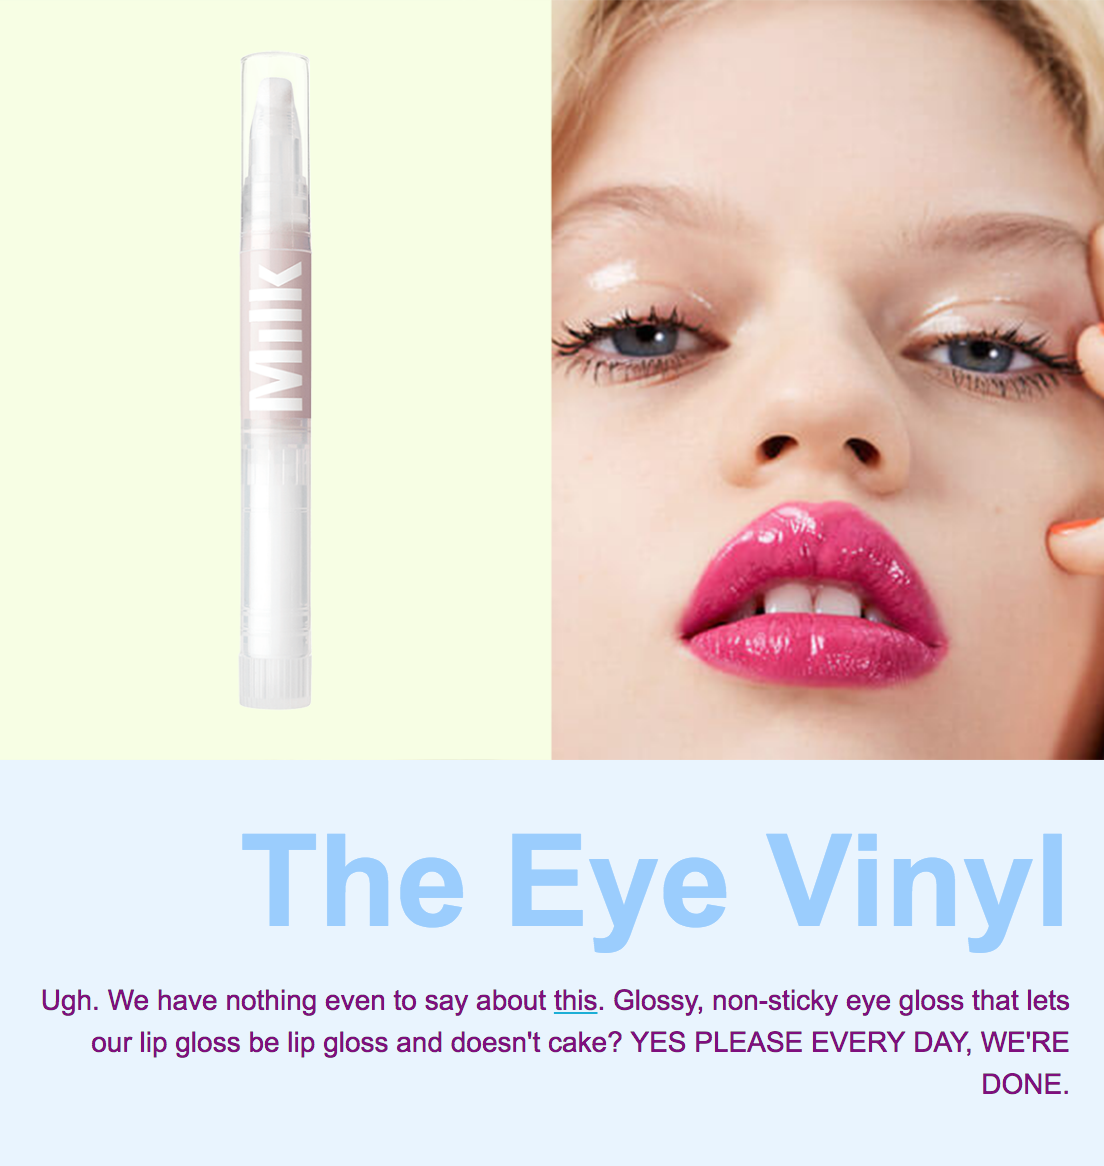 The Eye Vinyl | Ugh. We have nothing even to say about this. Glossy, non sticky eye gloss that lets our lip gloss be lip gloss and doesn't cake or crease? YES PLEASE EVERY DAY. WE'RE DONE.